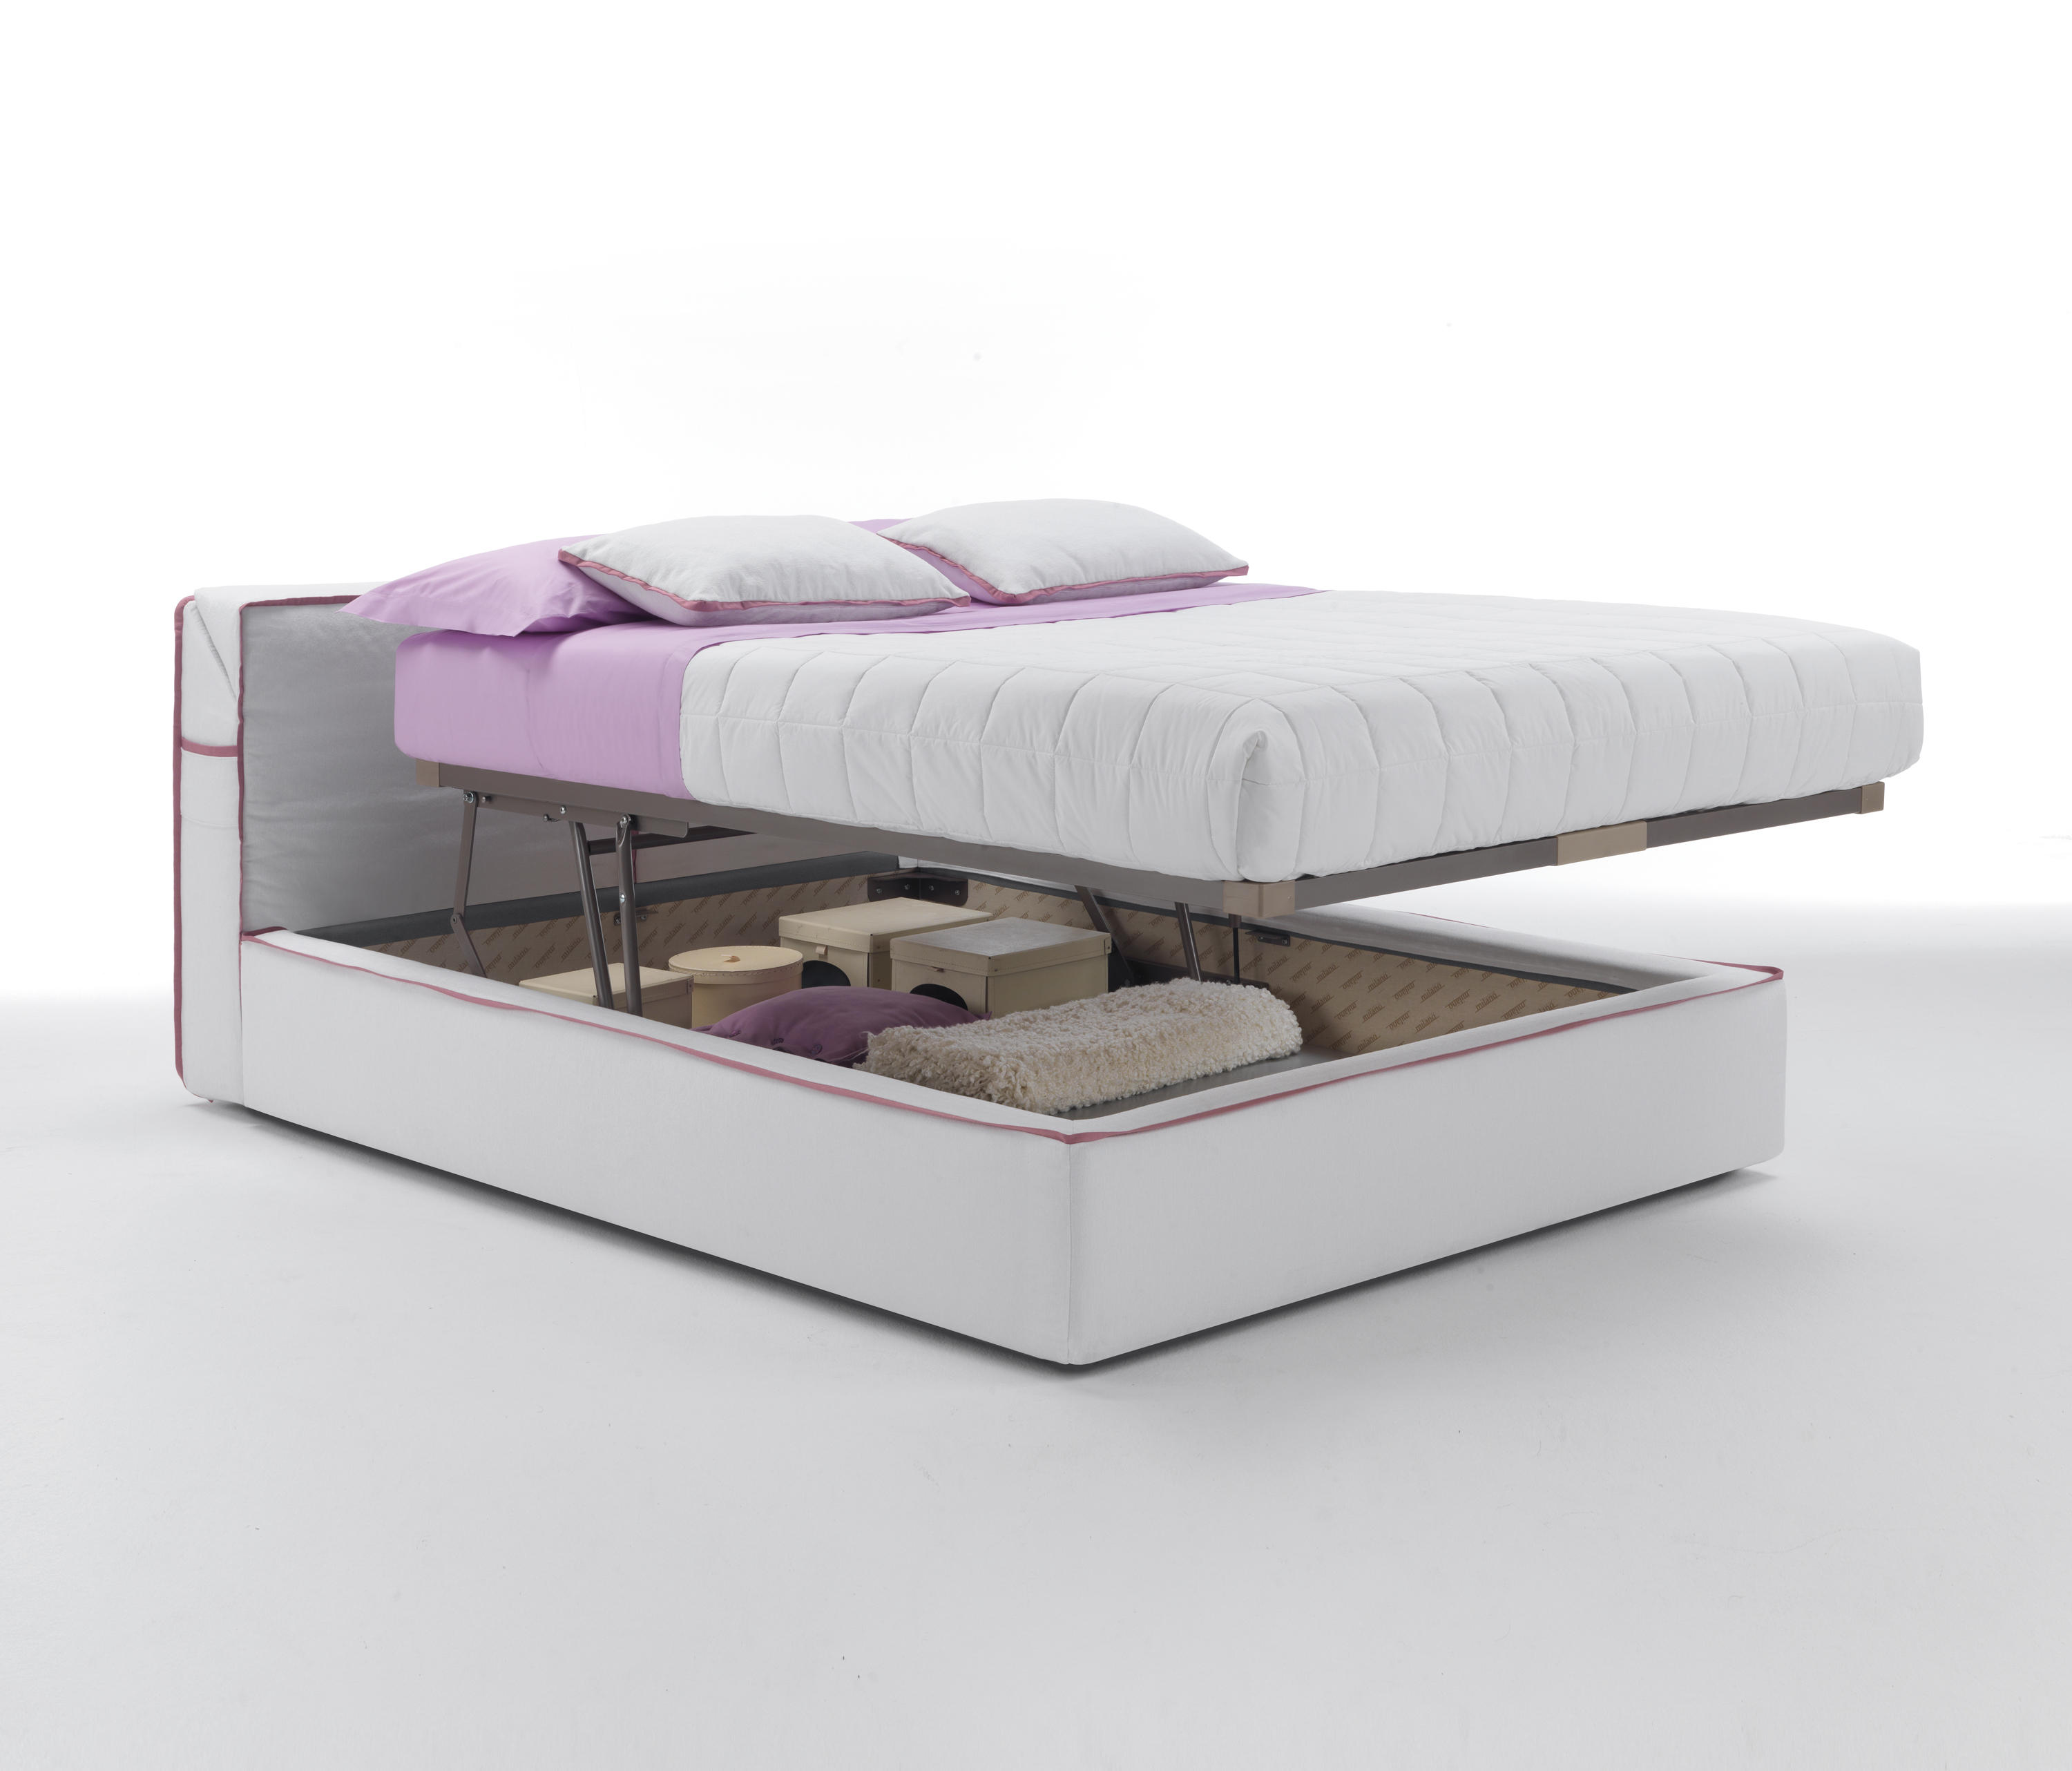 guadalupe double beds from milano bedding architonic. Black Bedroom Furniture Sets. Home Design Ideas